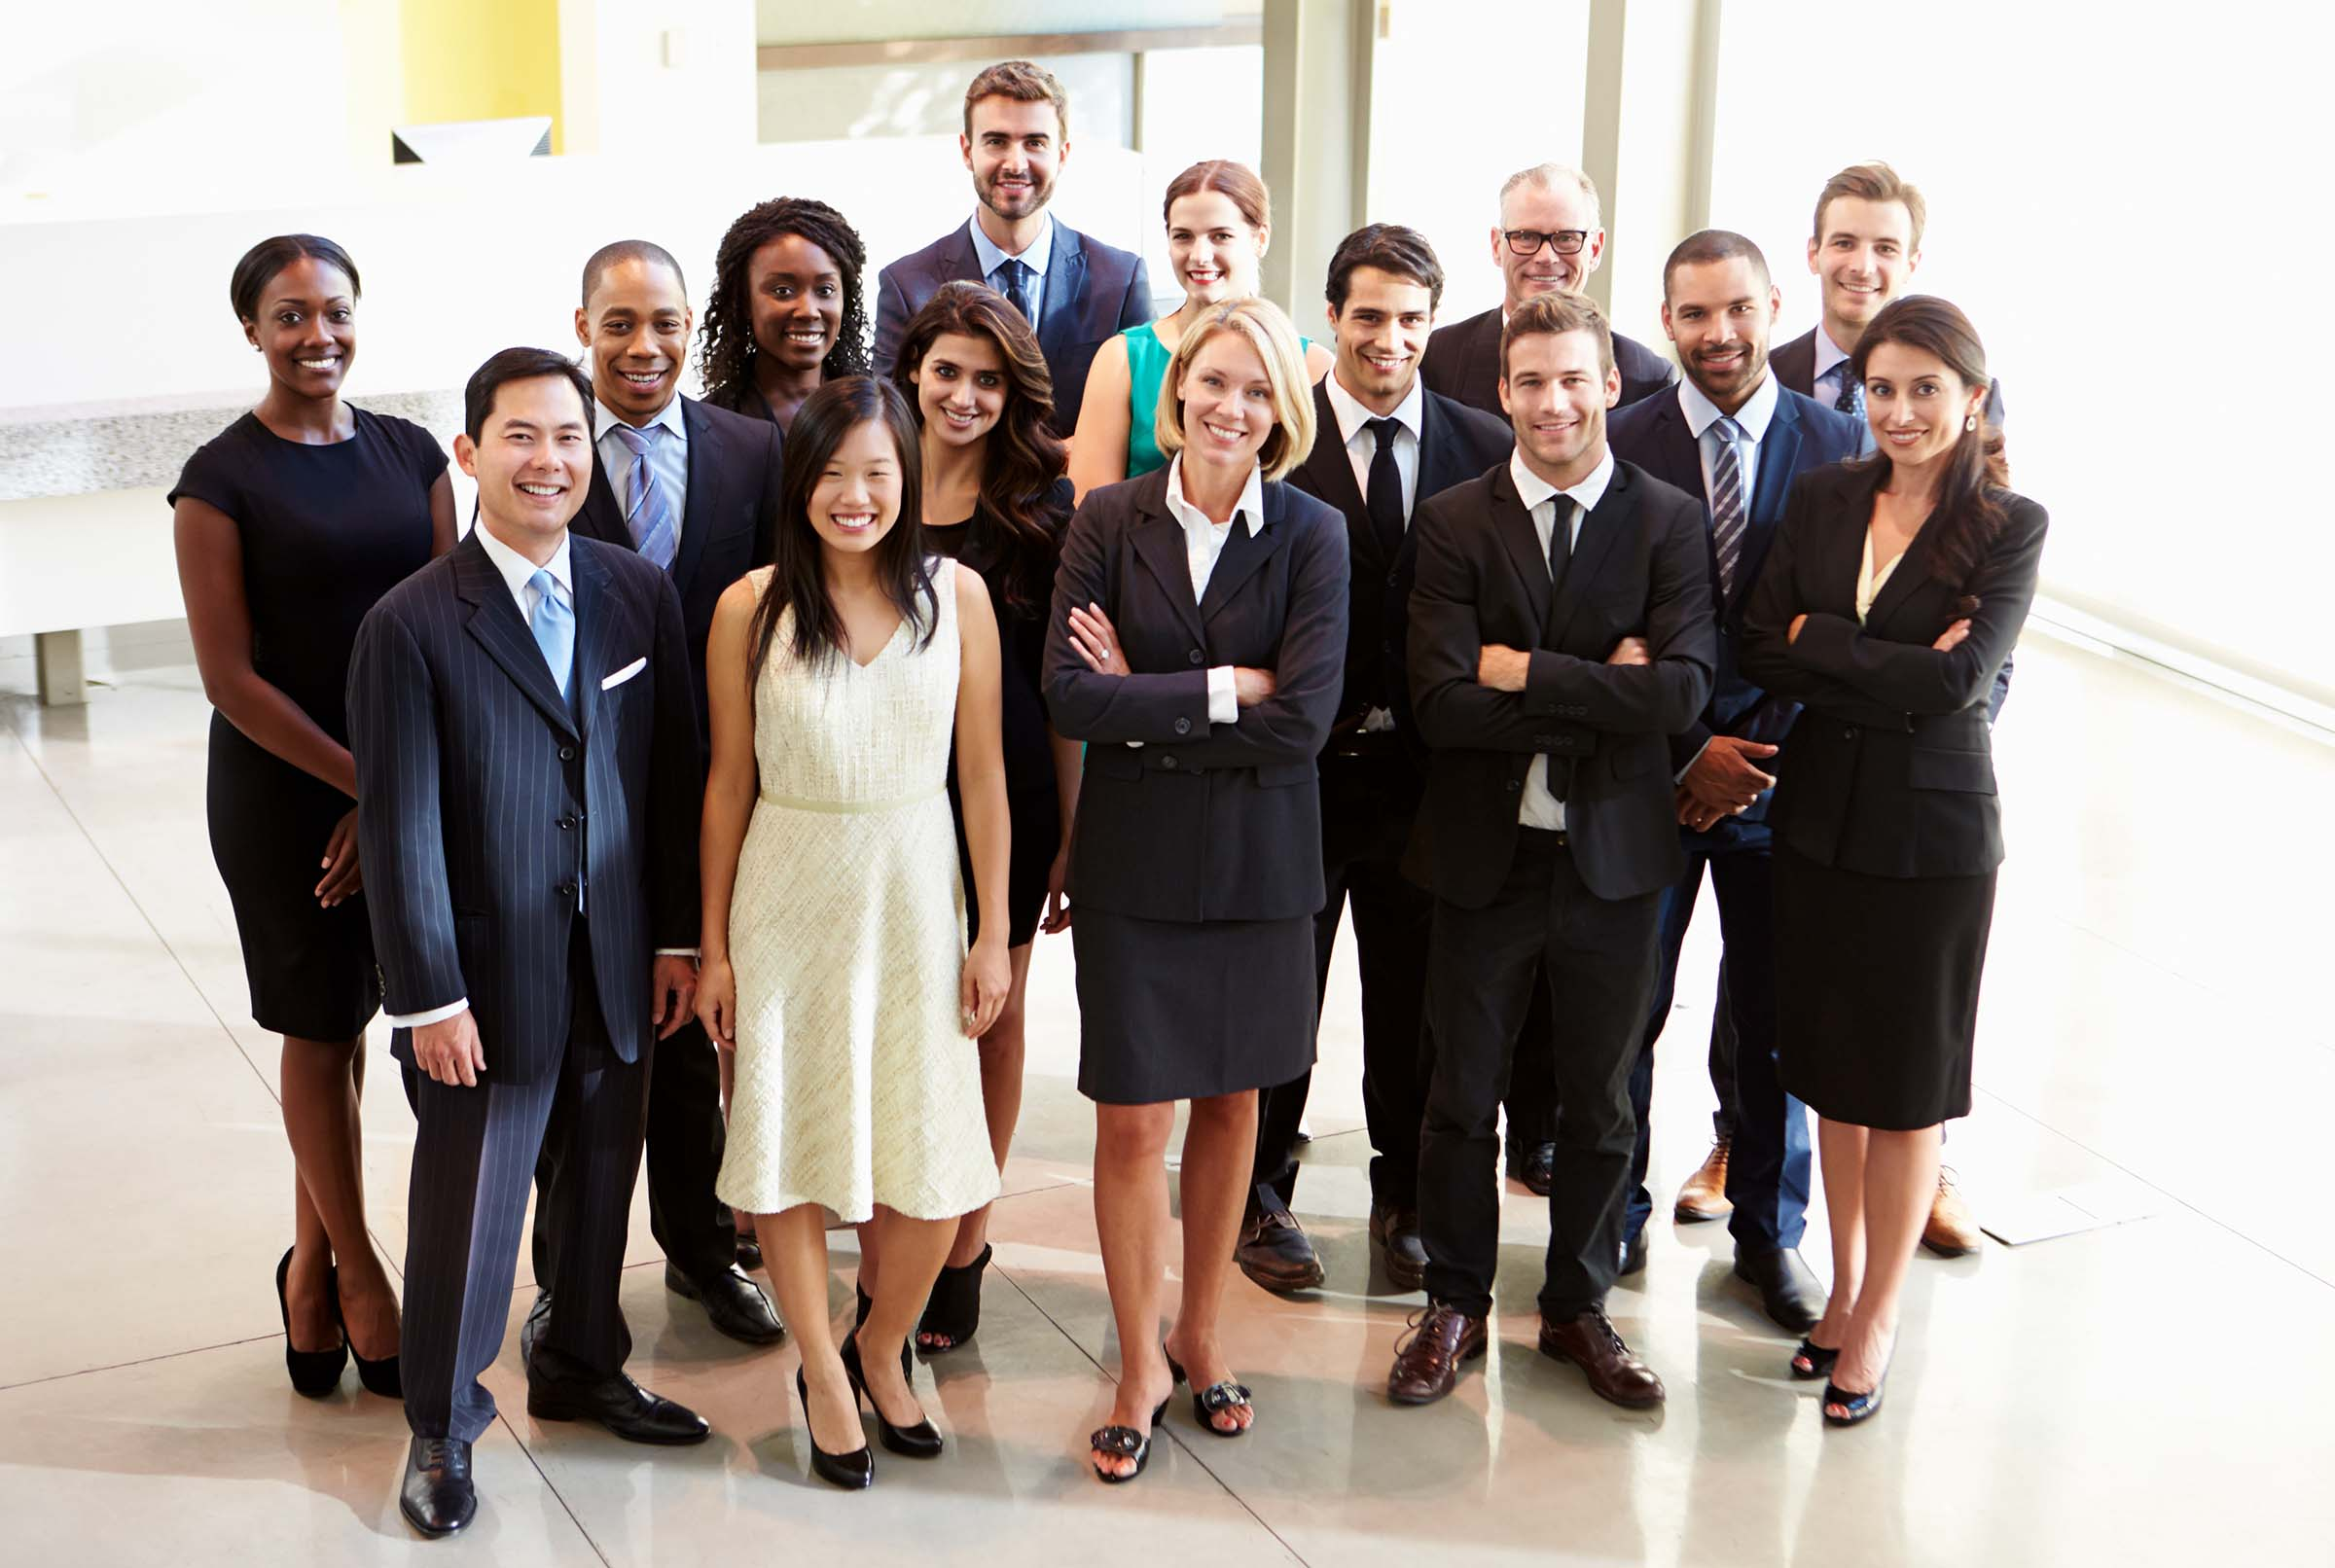 success story oxya multi-ethnic team of 20 executives, smiling, confident, for oxya success story